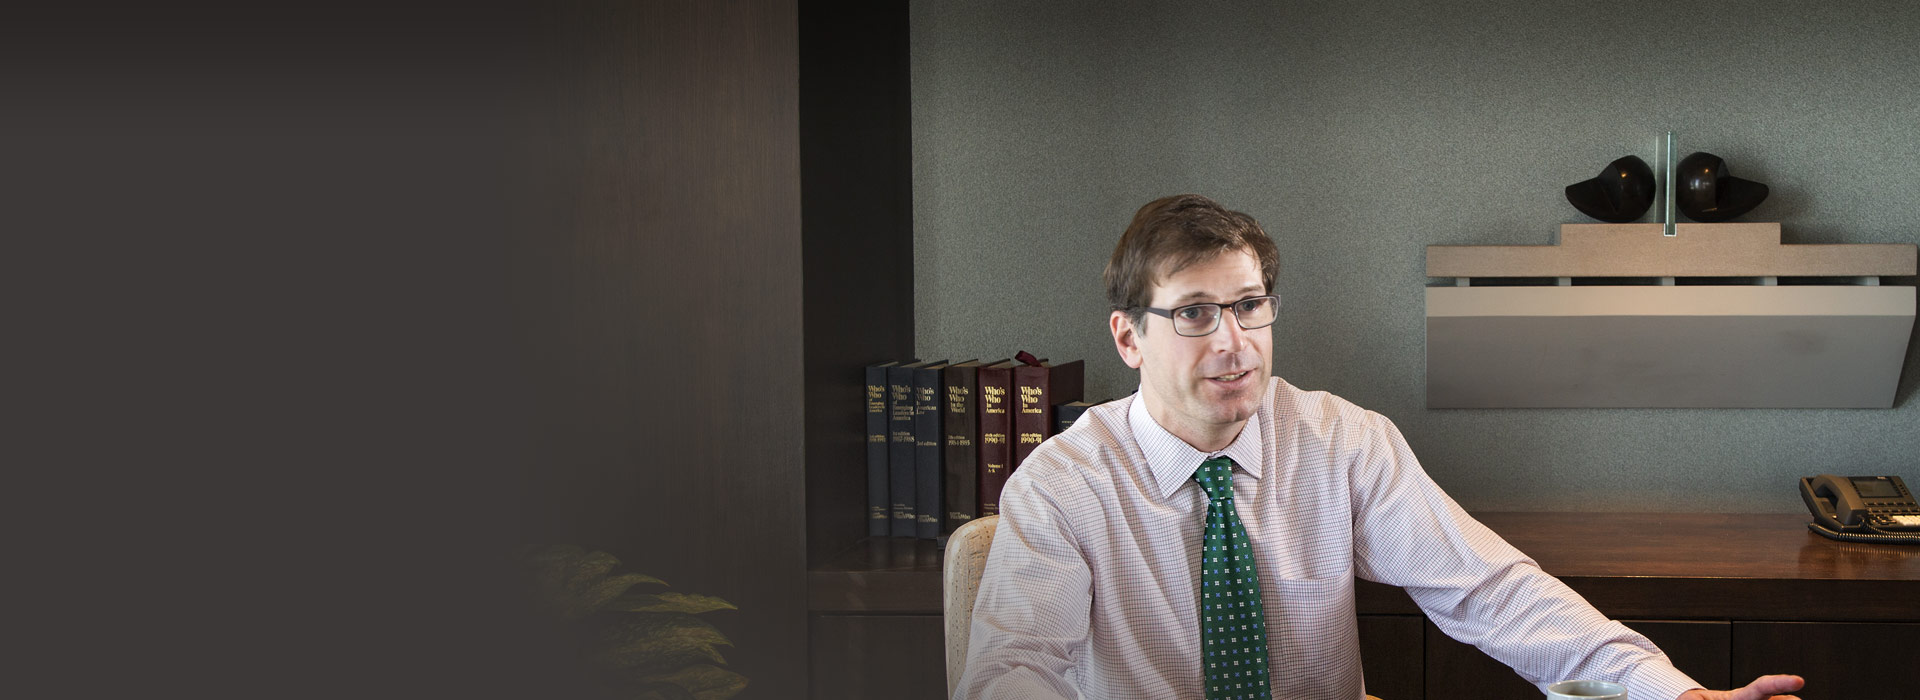 Thomas Neill, St. louis Product Liability Attorney